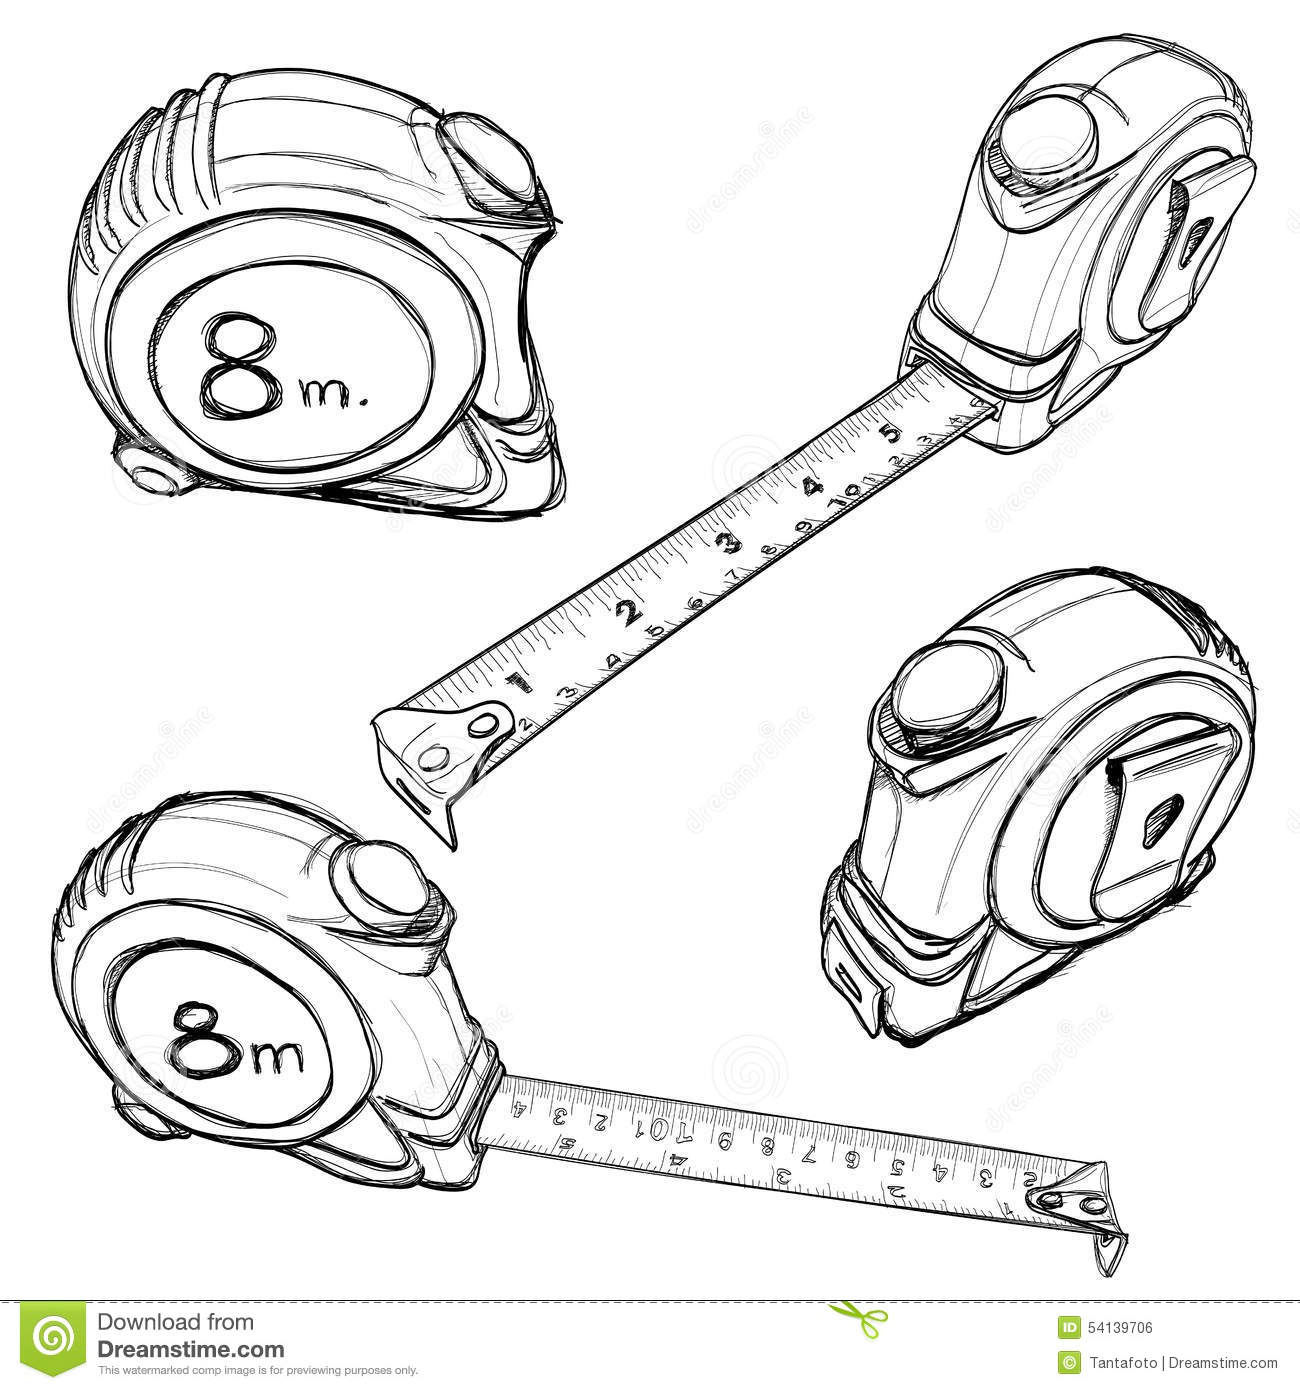 Tape Measure hand drawing stock vector. Illustration of